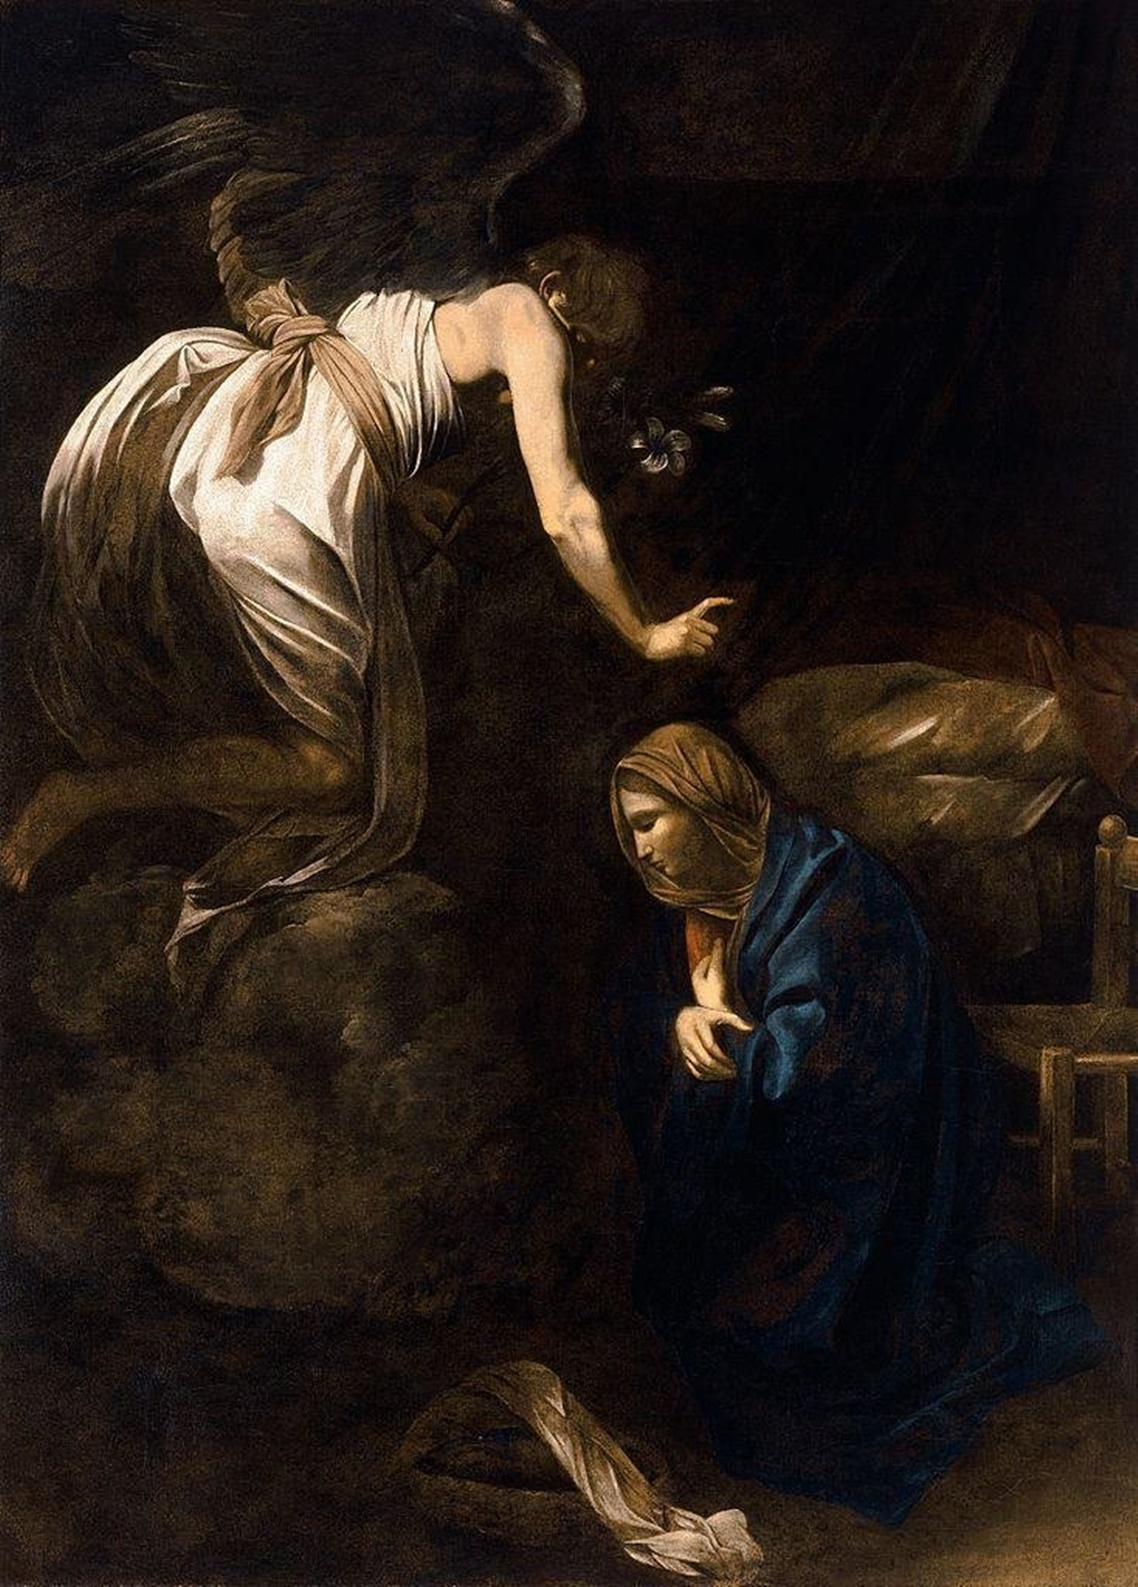 https://i2.wp.com/upload.wikimedia.org/wikipedia/commons/6/6c/Caravaggio_-_The_Annunciation.JPG